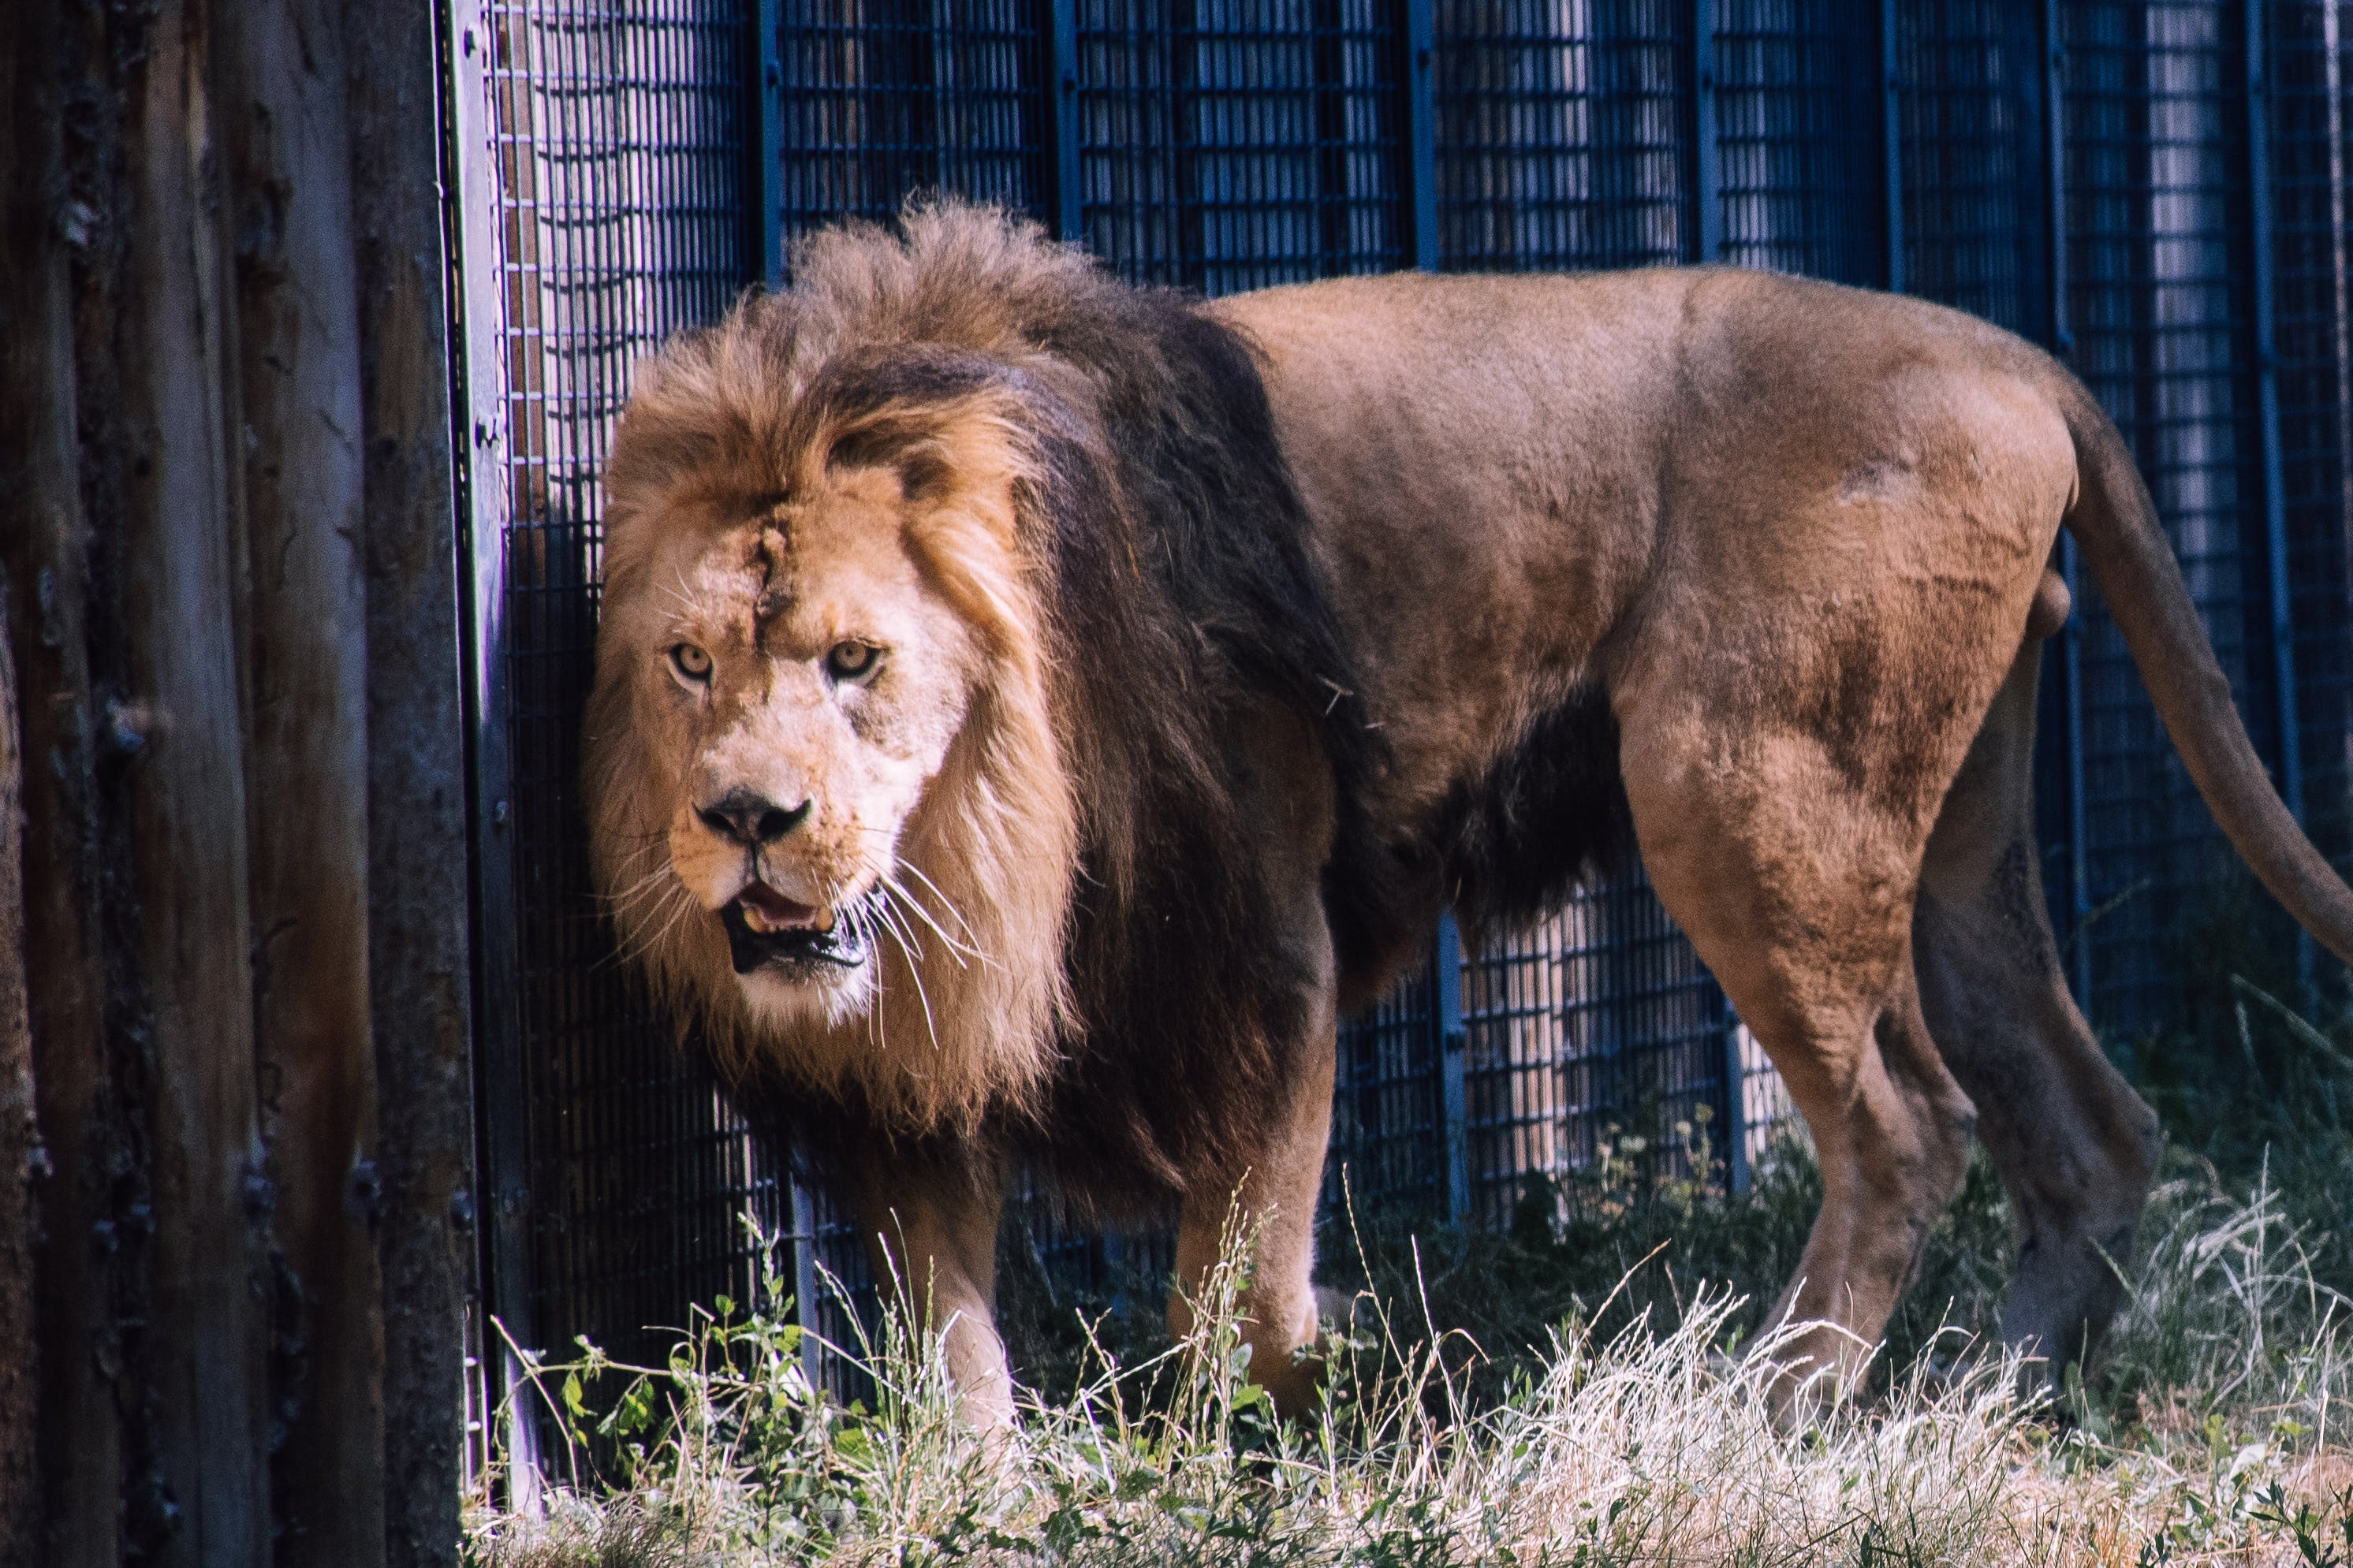 Photo of Lion Inside Cage